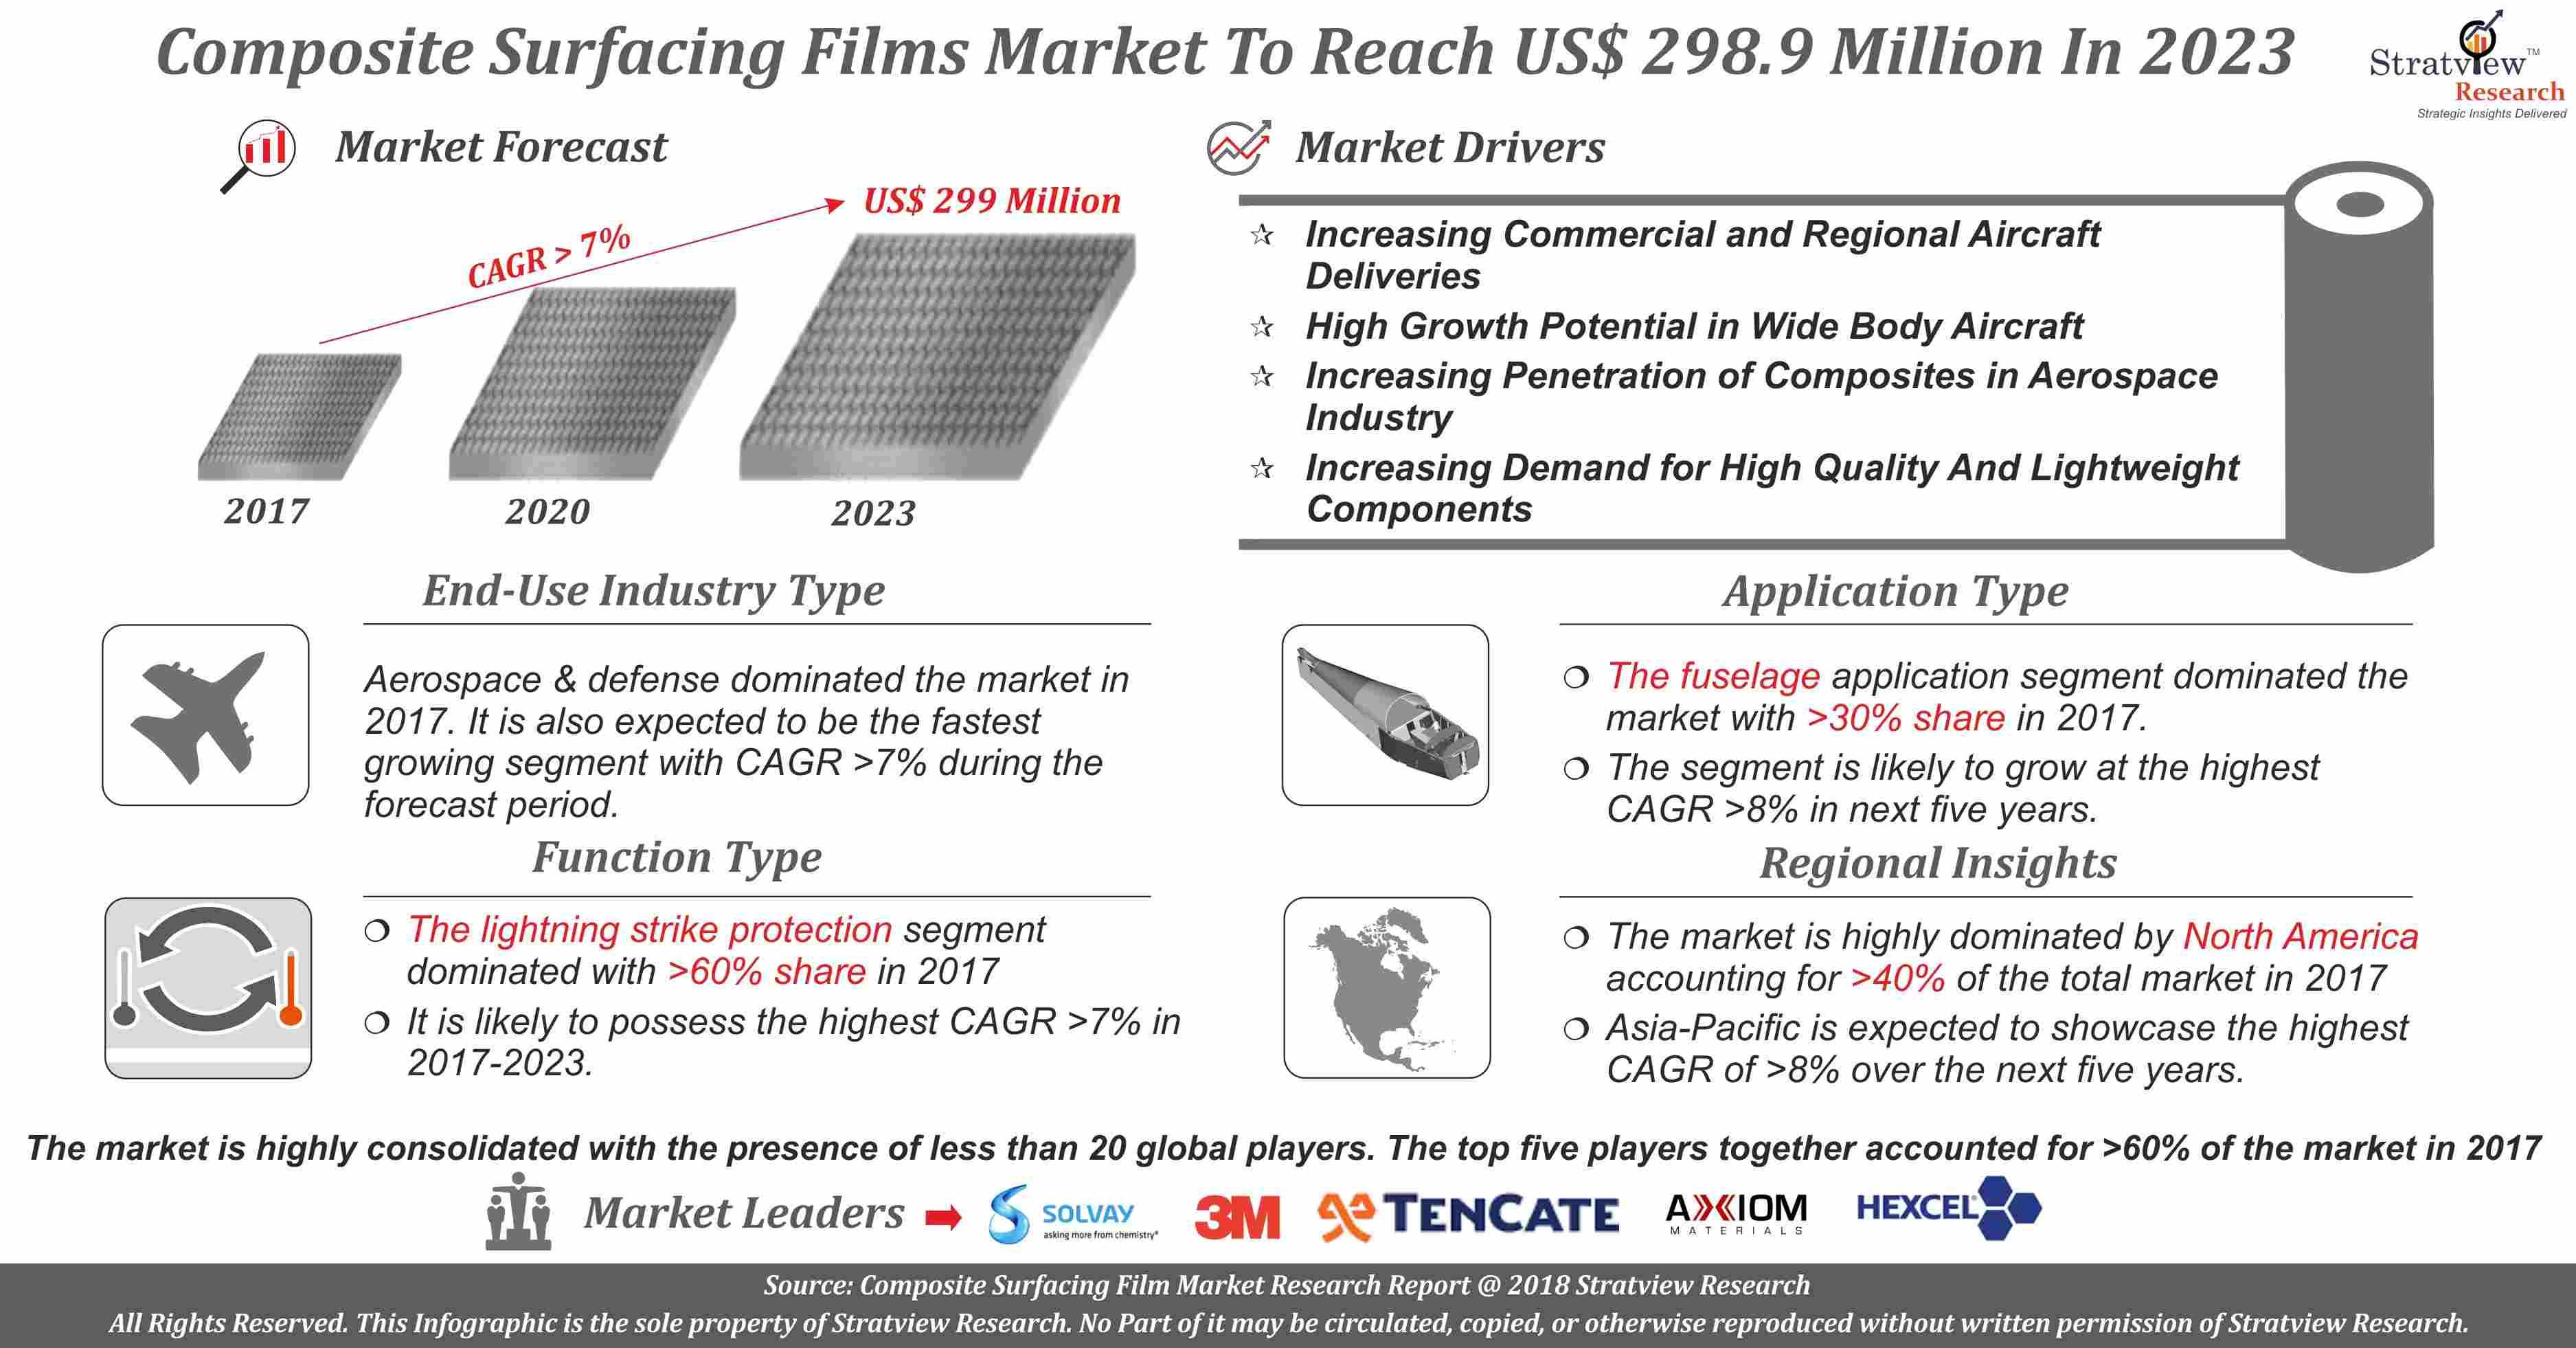 Composite Surfacing Films Market Analysis